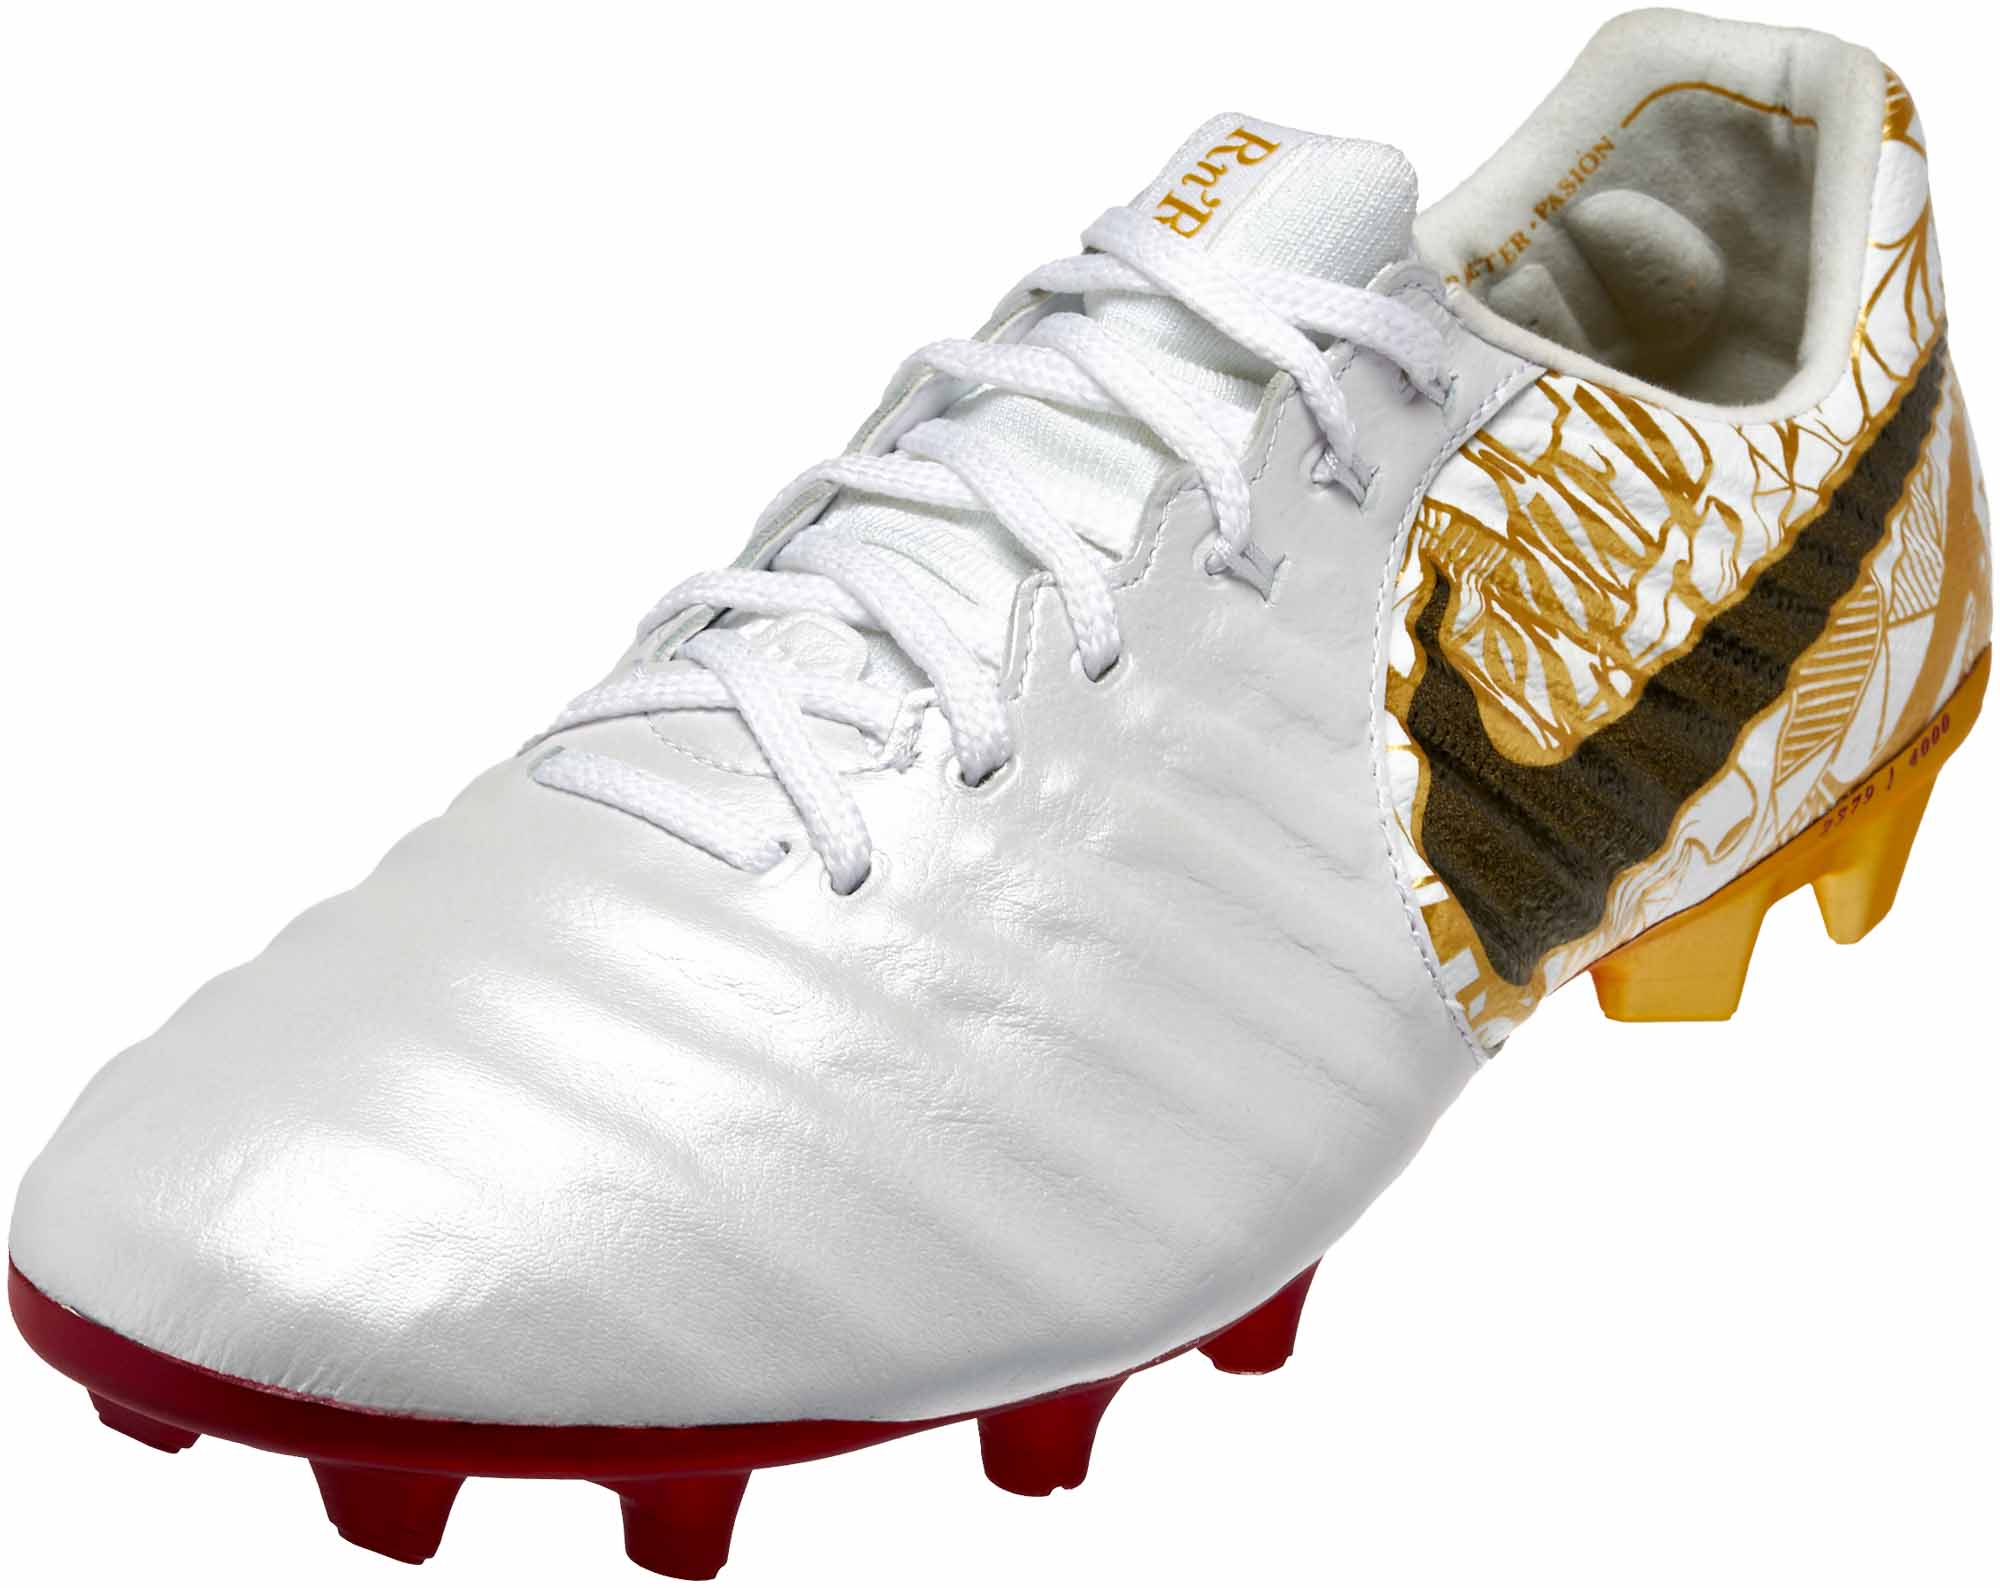 White Shoes With Gold Studs